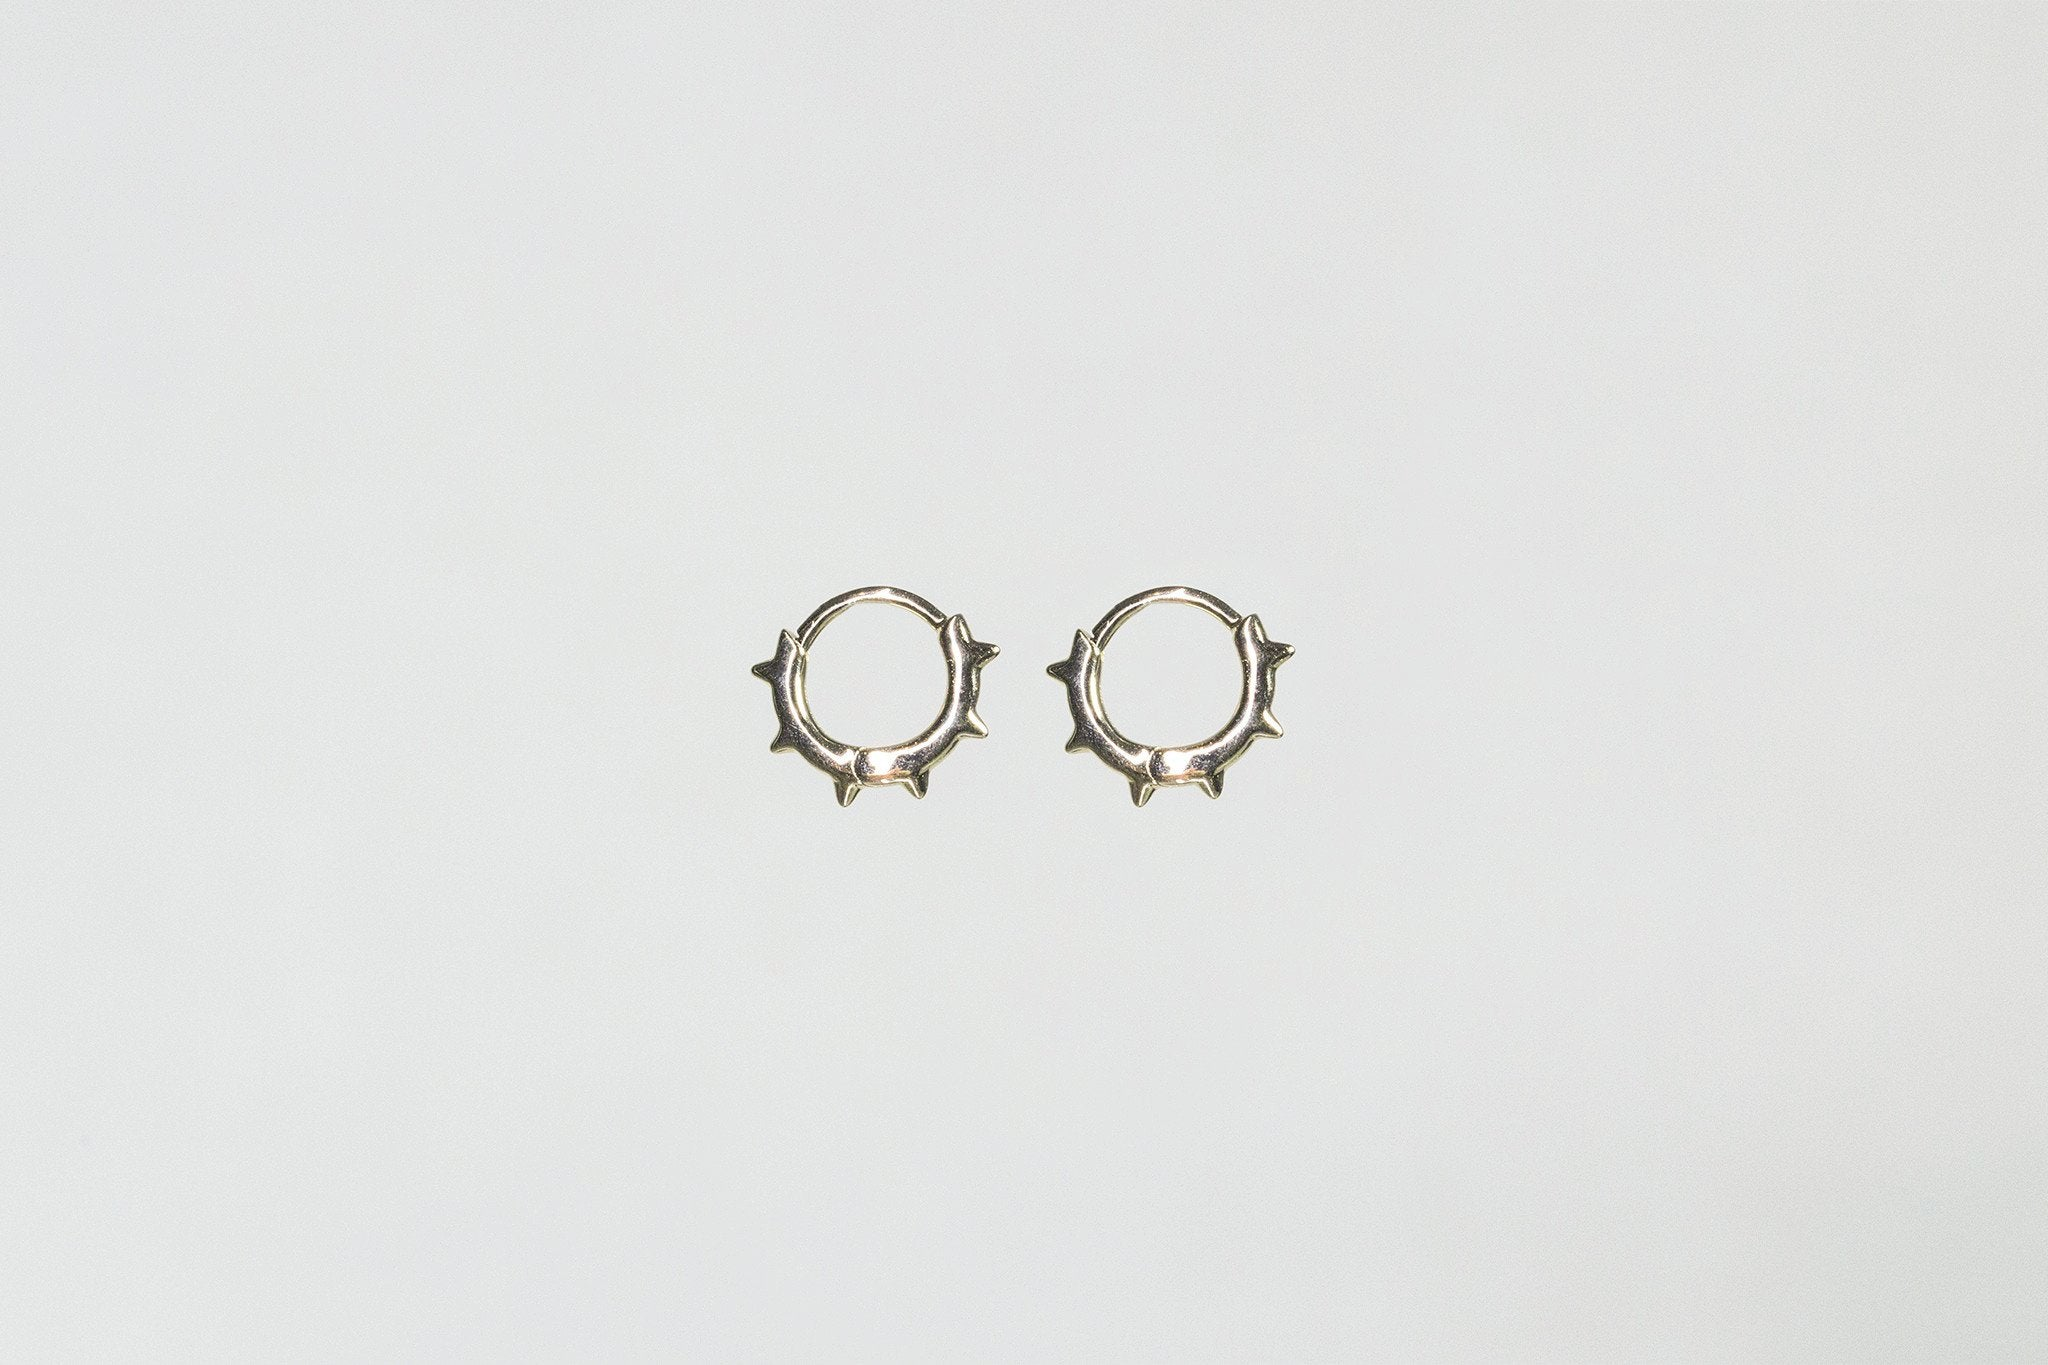 our absolute fav - spiky sleepers - hoops that everyone loves!